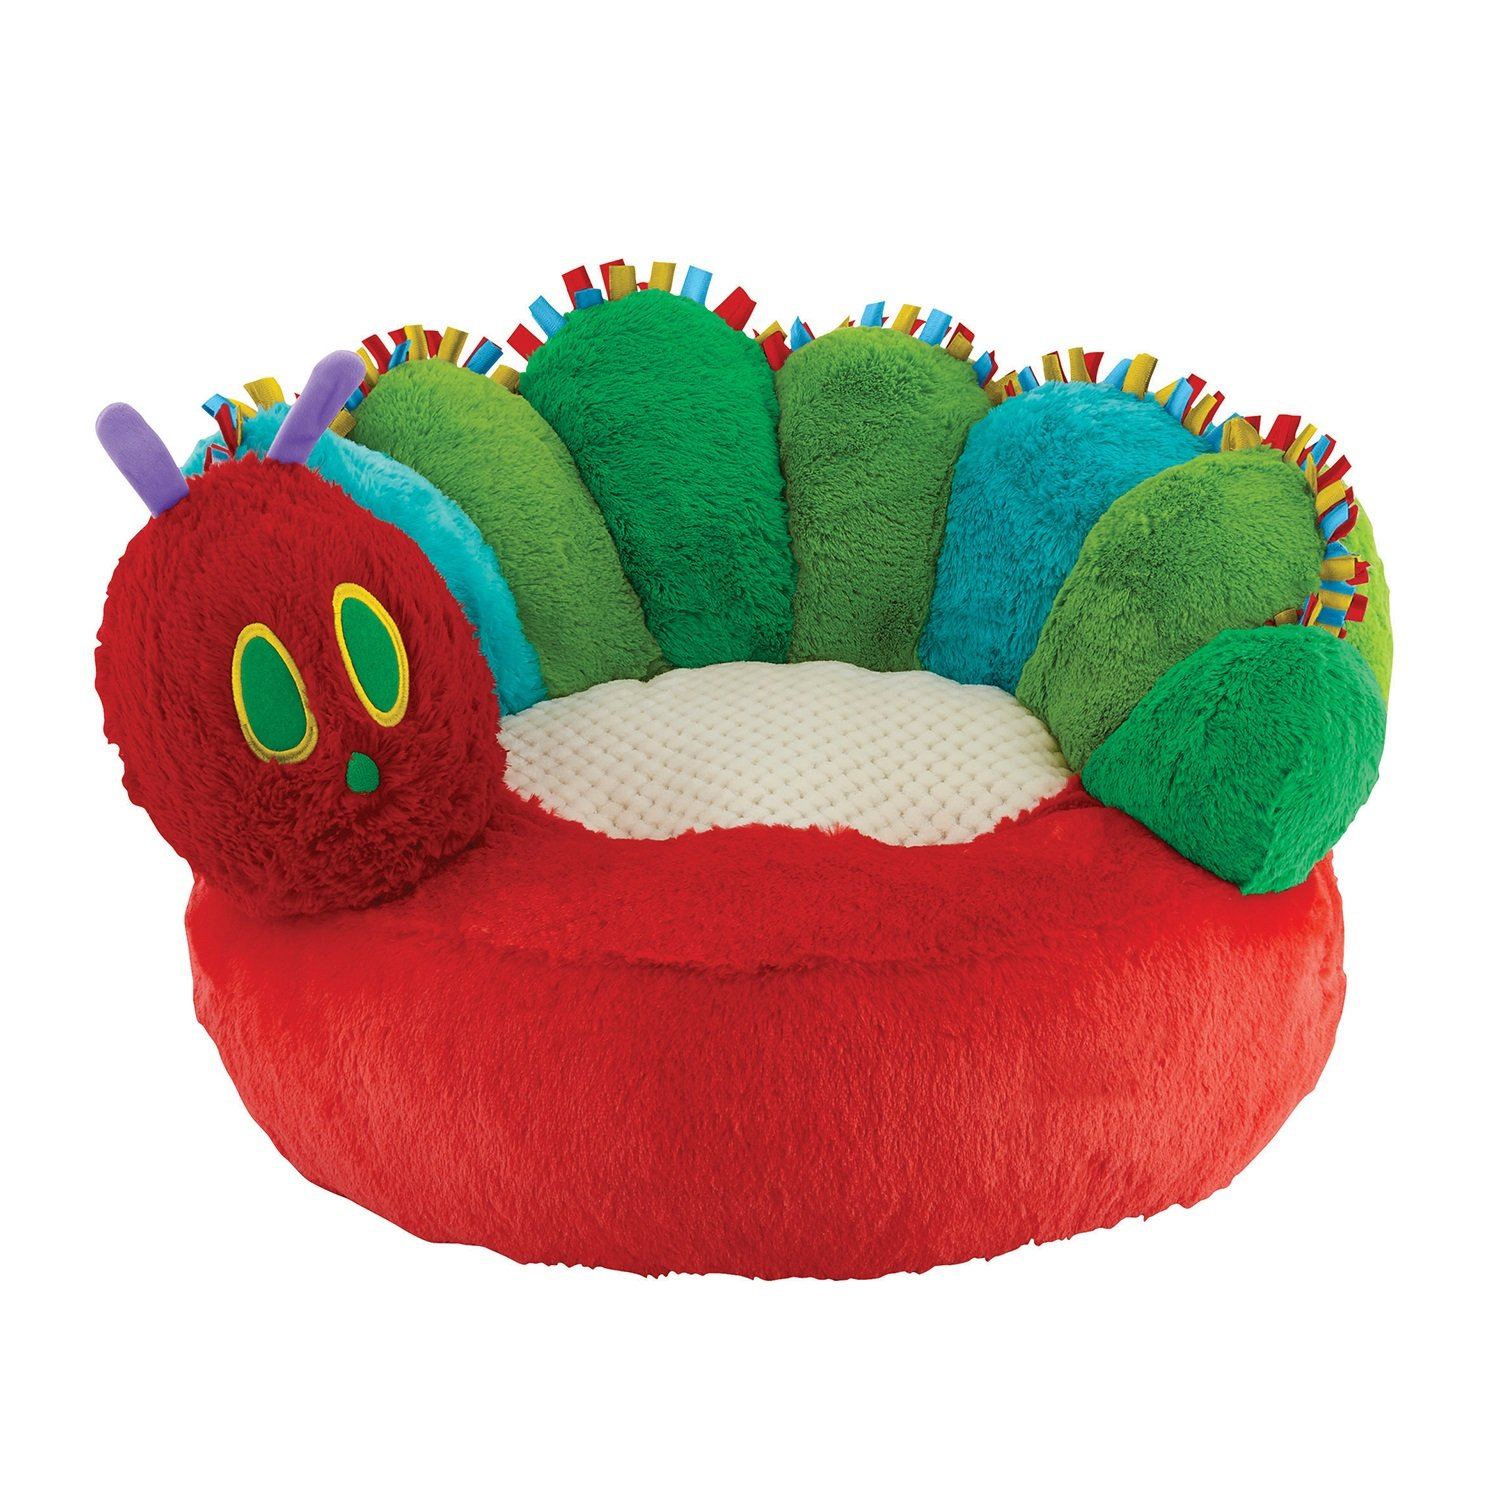 Stephan Baby Eric Carle The Very Hungry Caterpillar Plush Chair by Stephan Baby